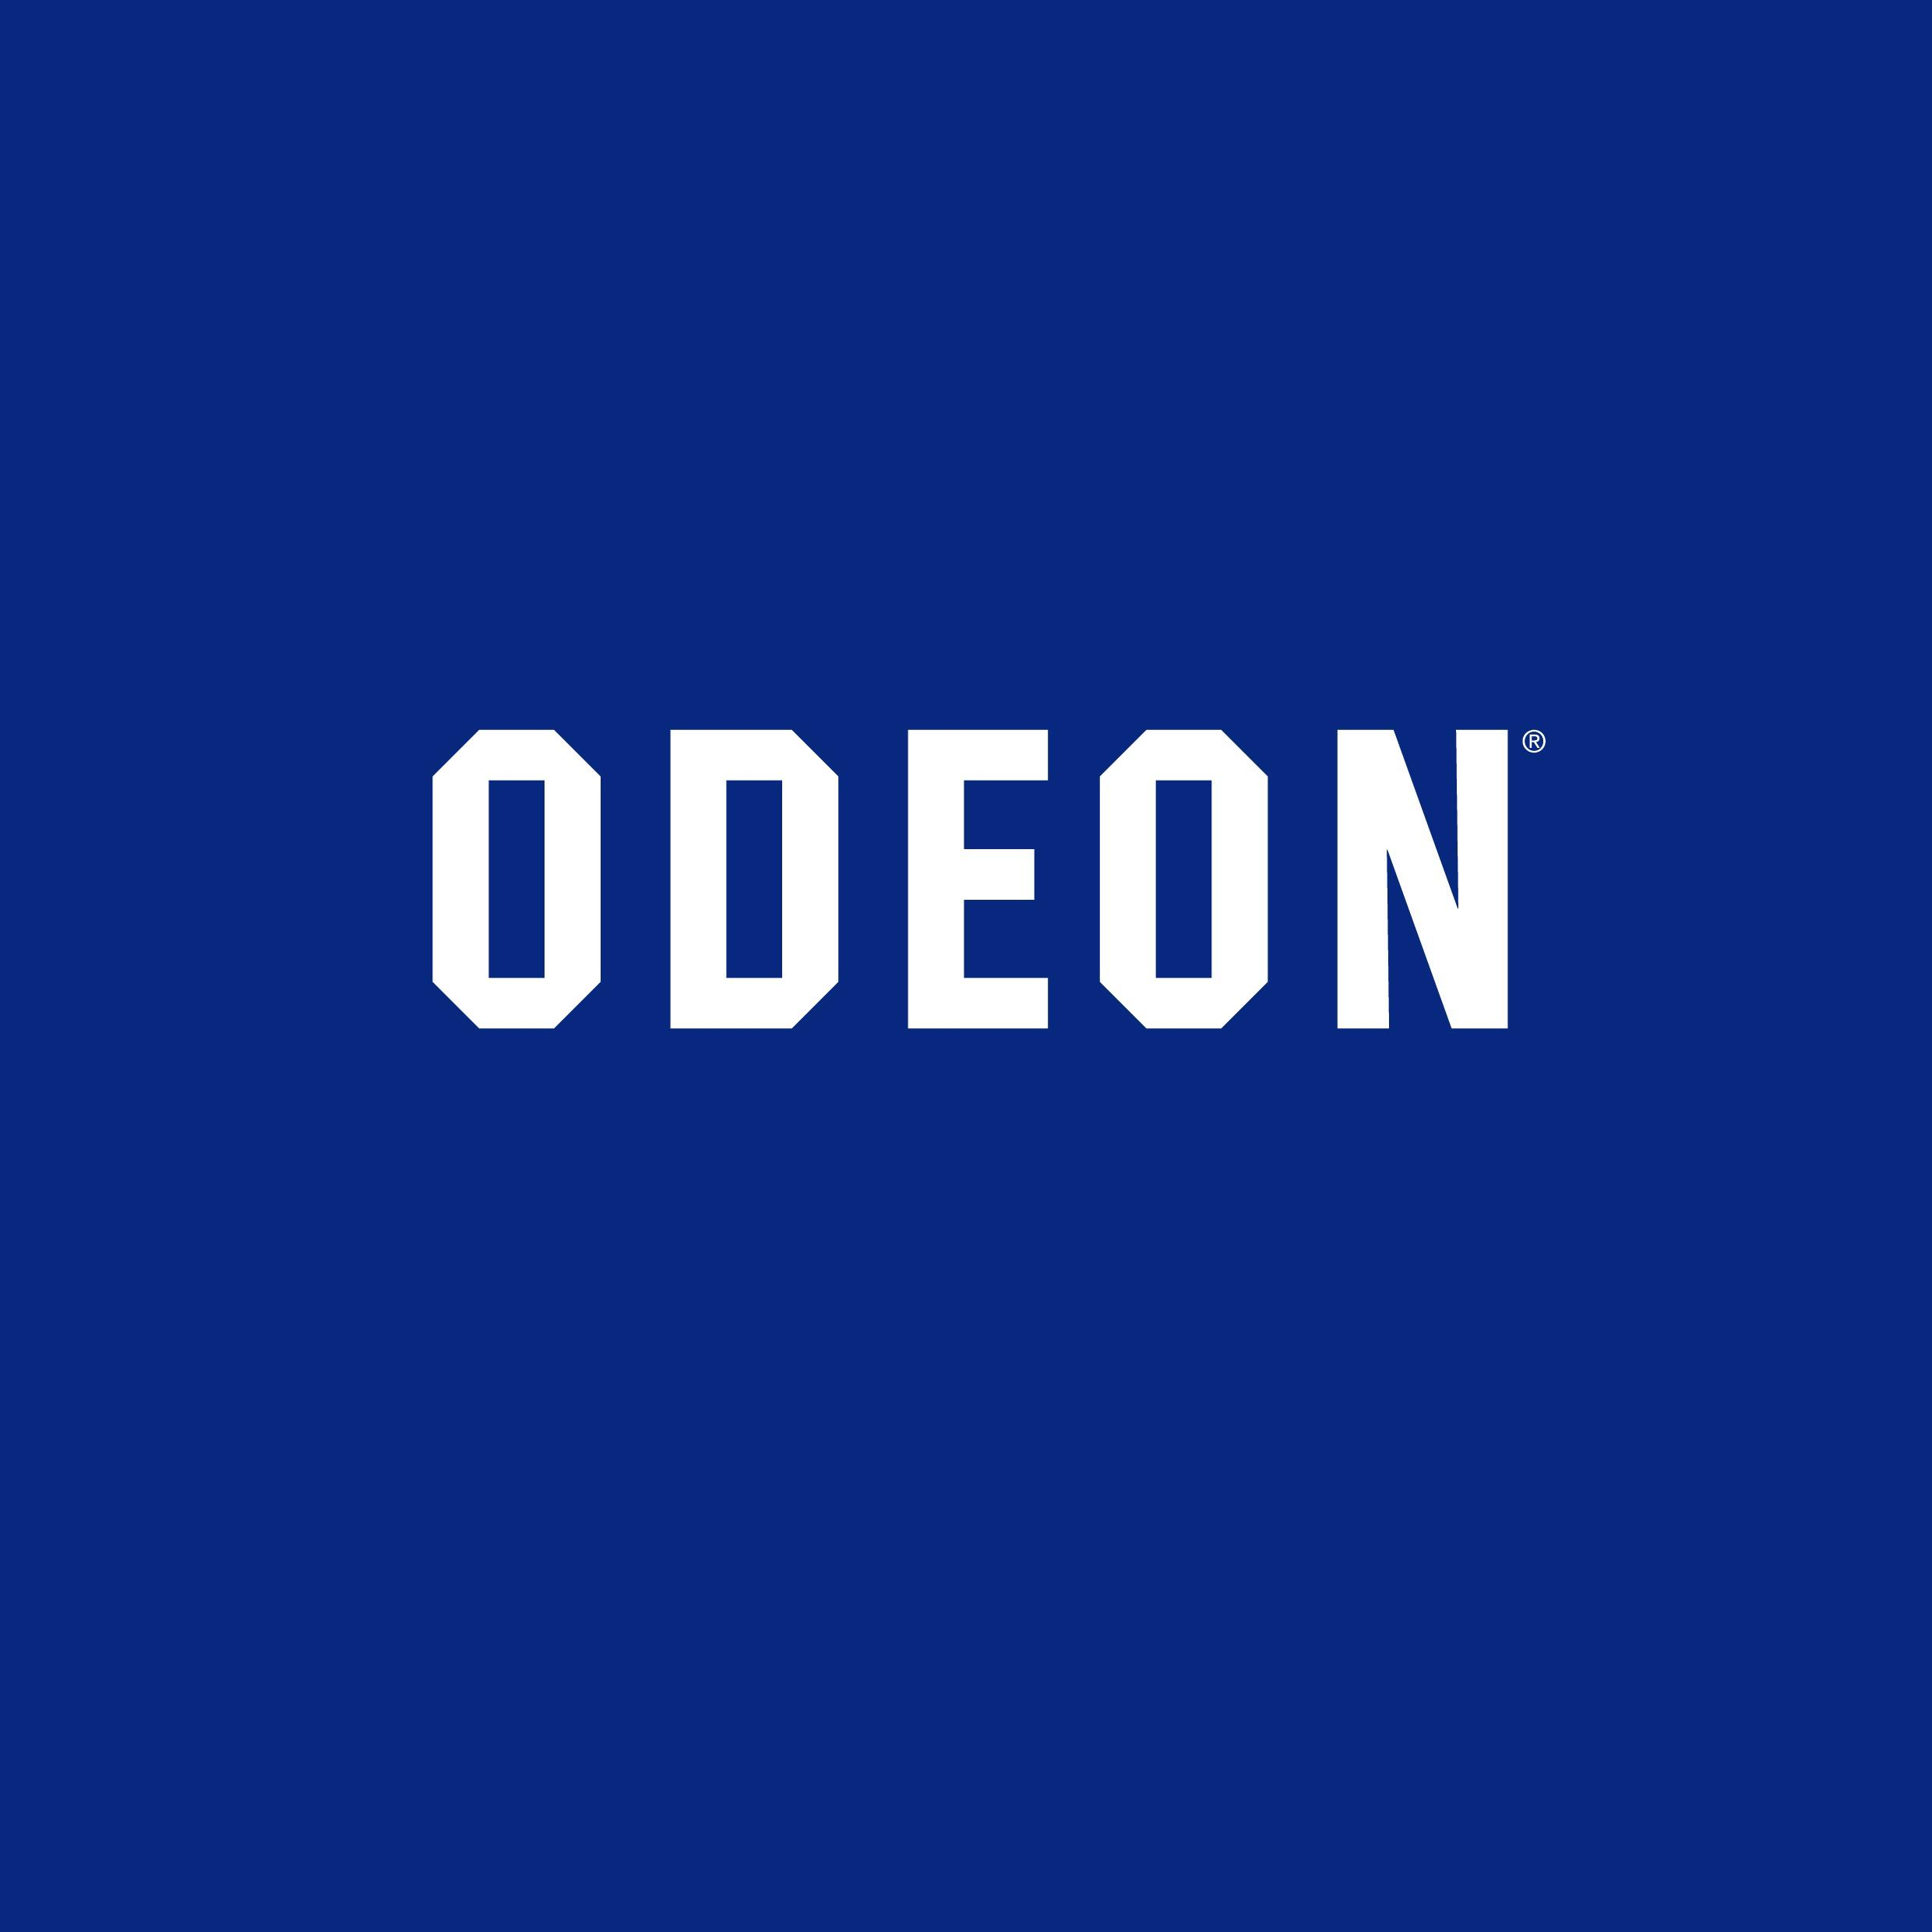 ODEON Newark - Newark on Trent, Nottinghamshire NG24 1TN - 03330 144501 | ShowMeLocal.com